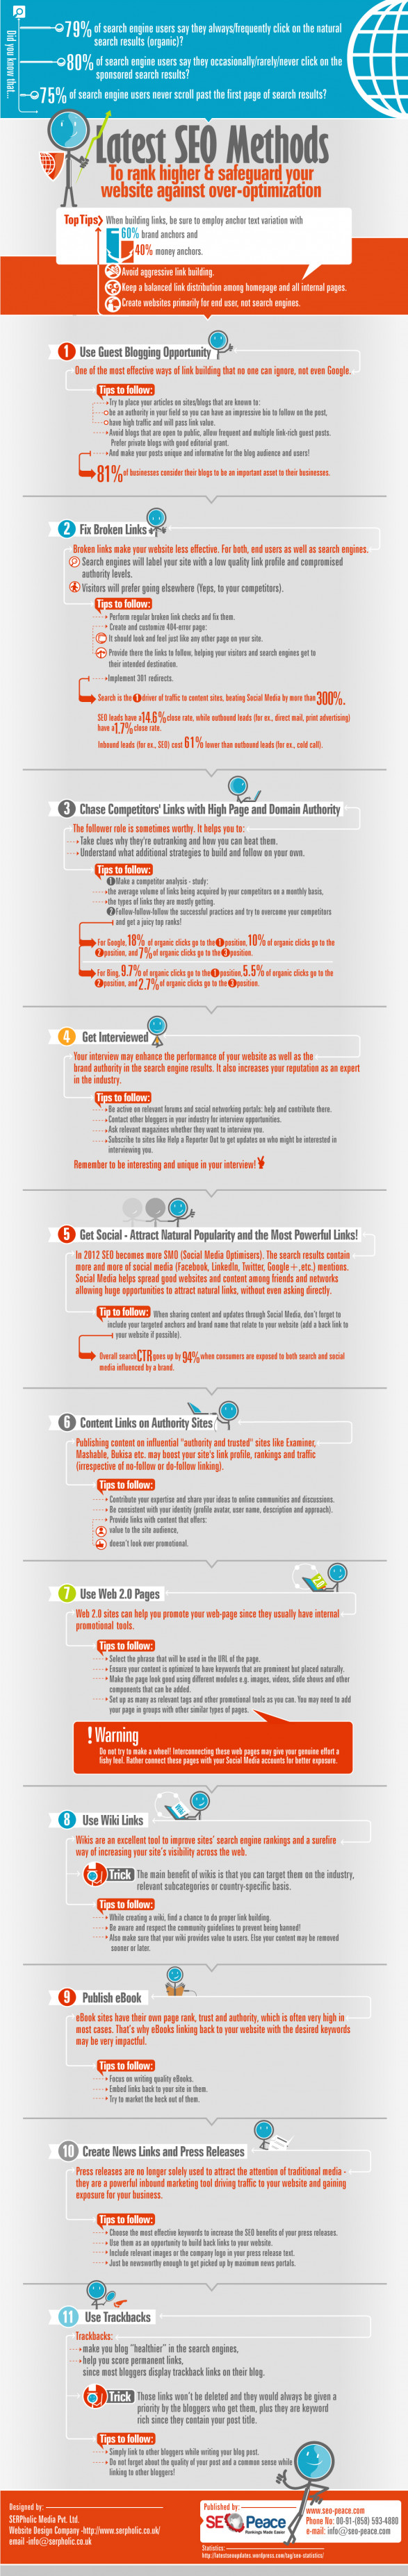 Infographic: Latest SEO Methods To Rank Higher